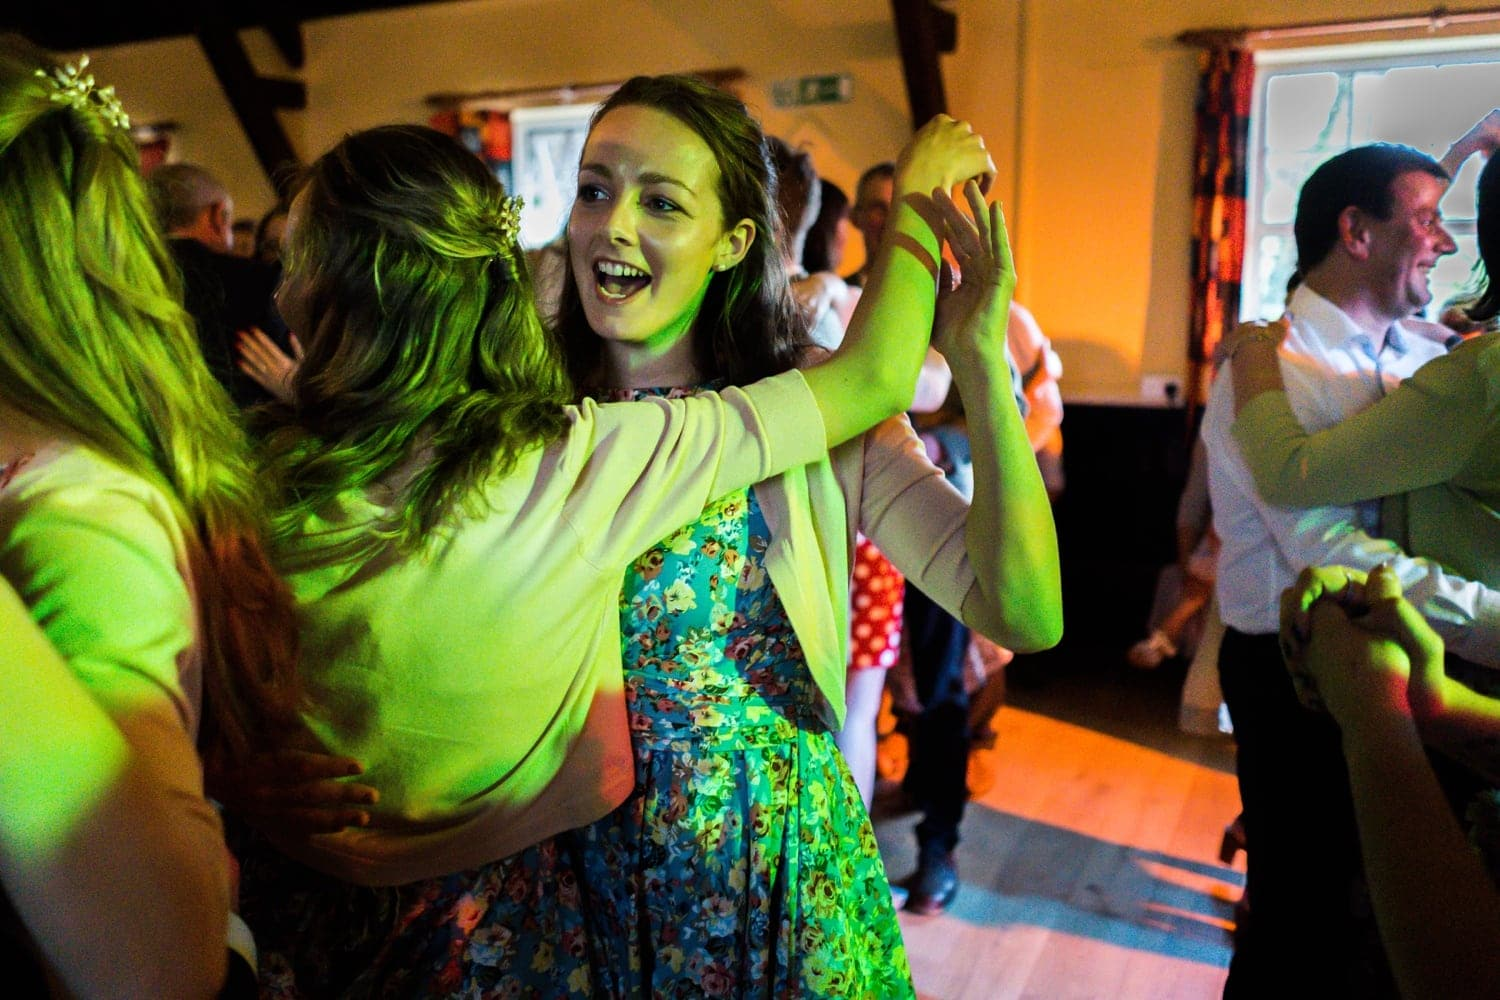 Dancing at village hall wedding reception in Monmouthshire